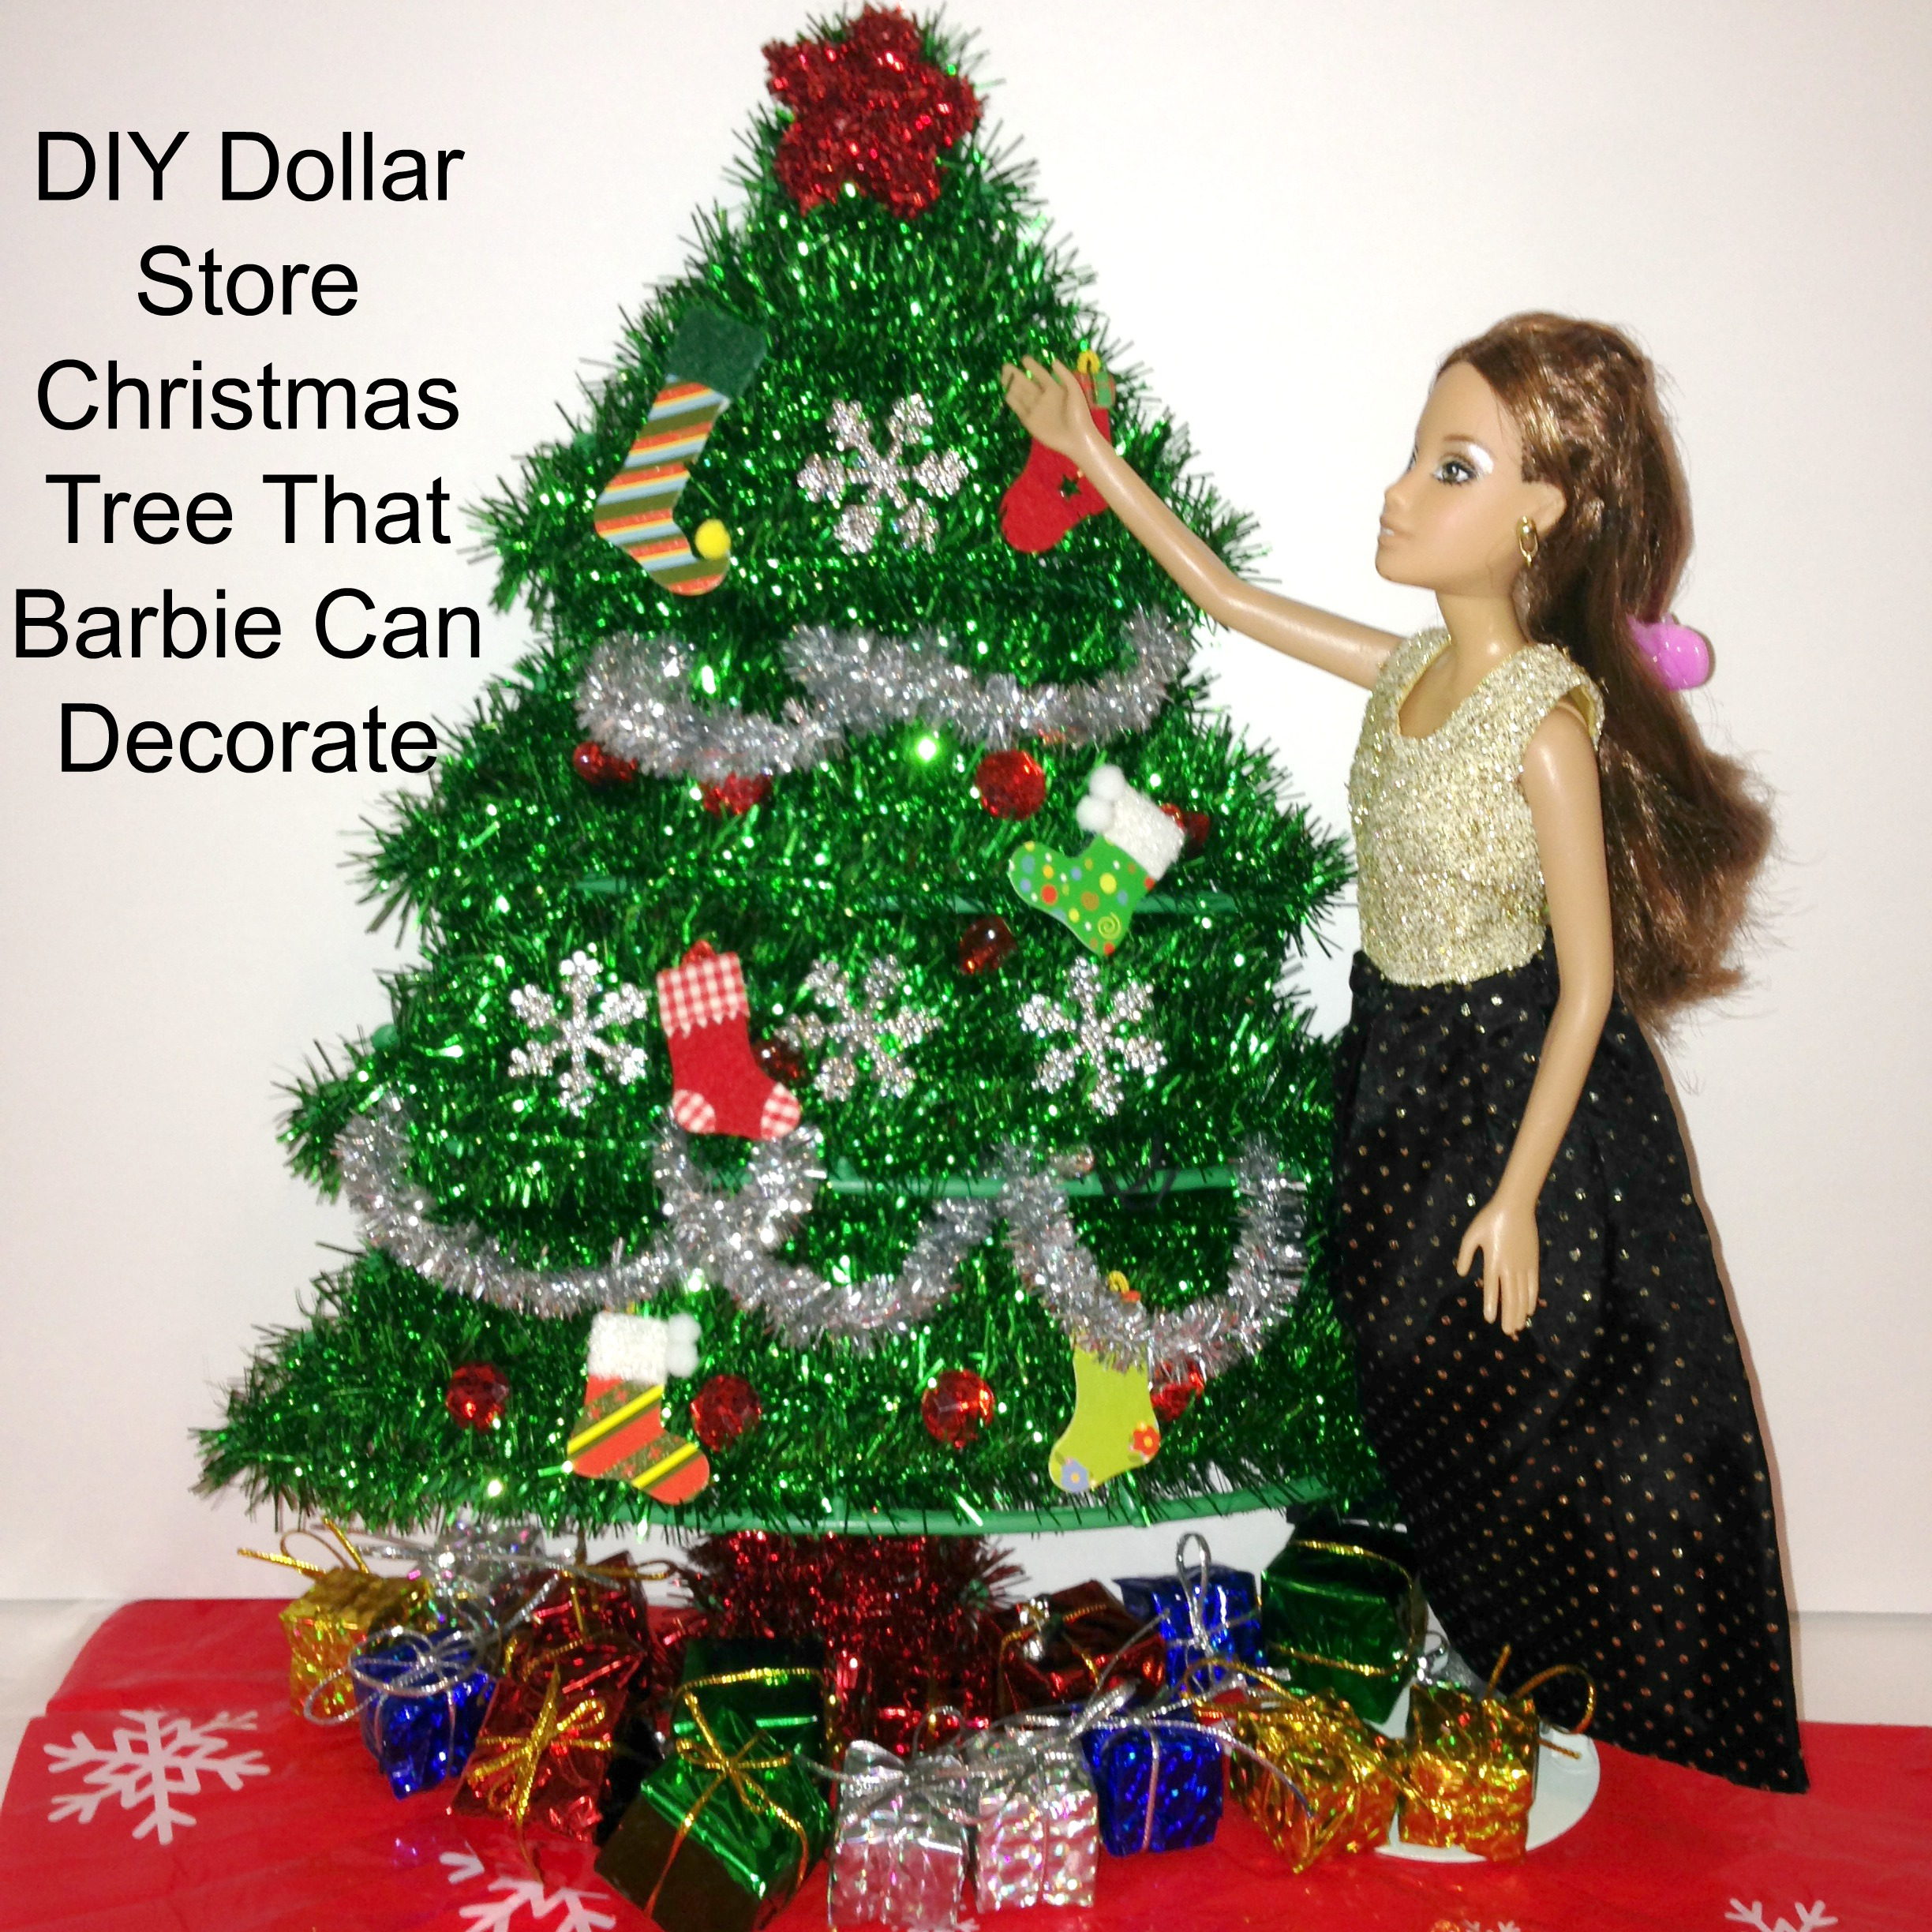 Diy Barbie Doll Christmas Tree From Dollar Store Finds This